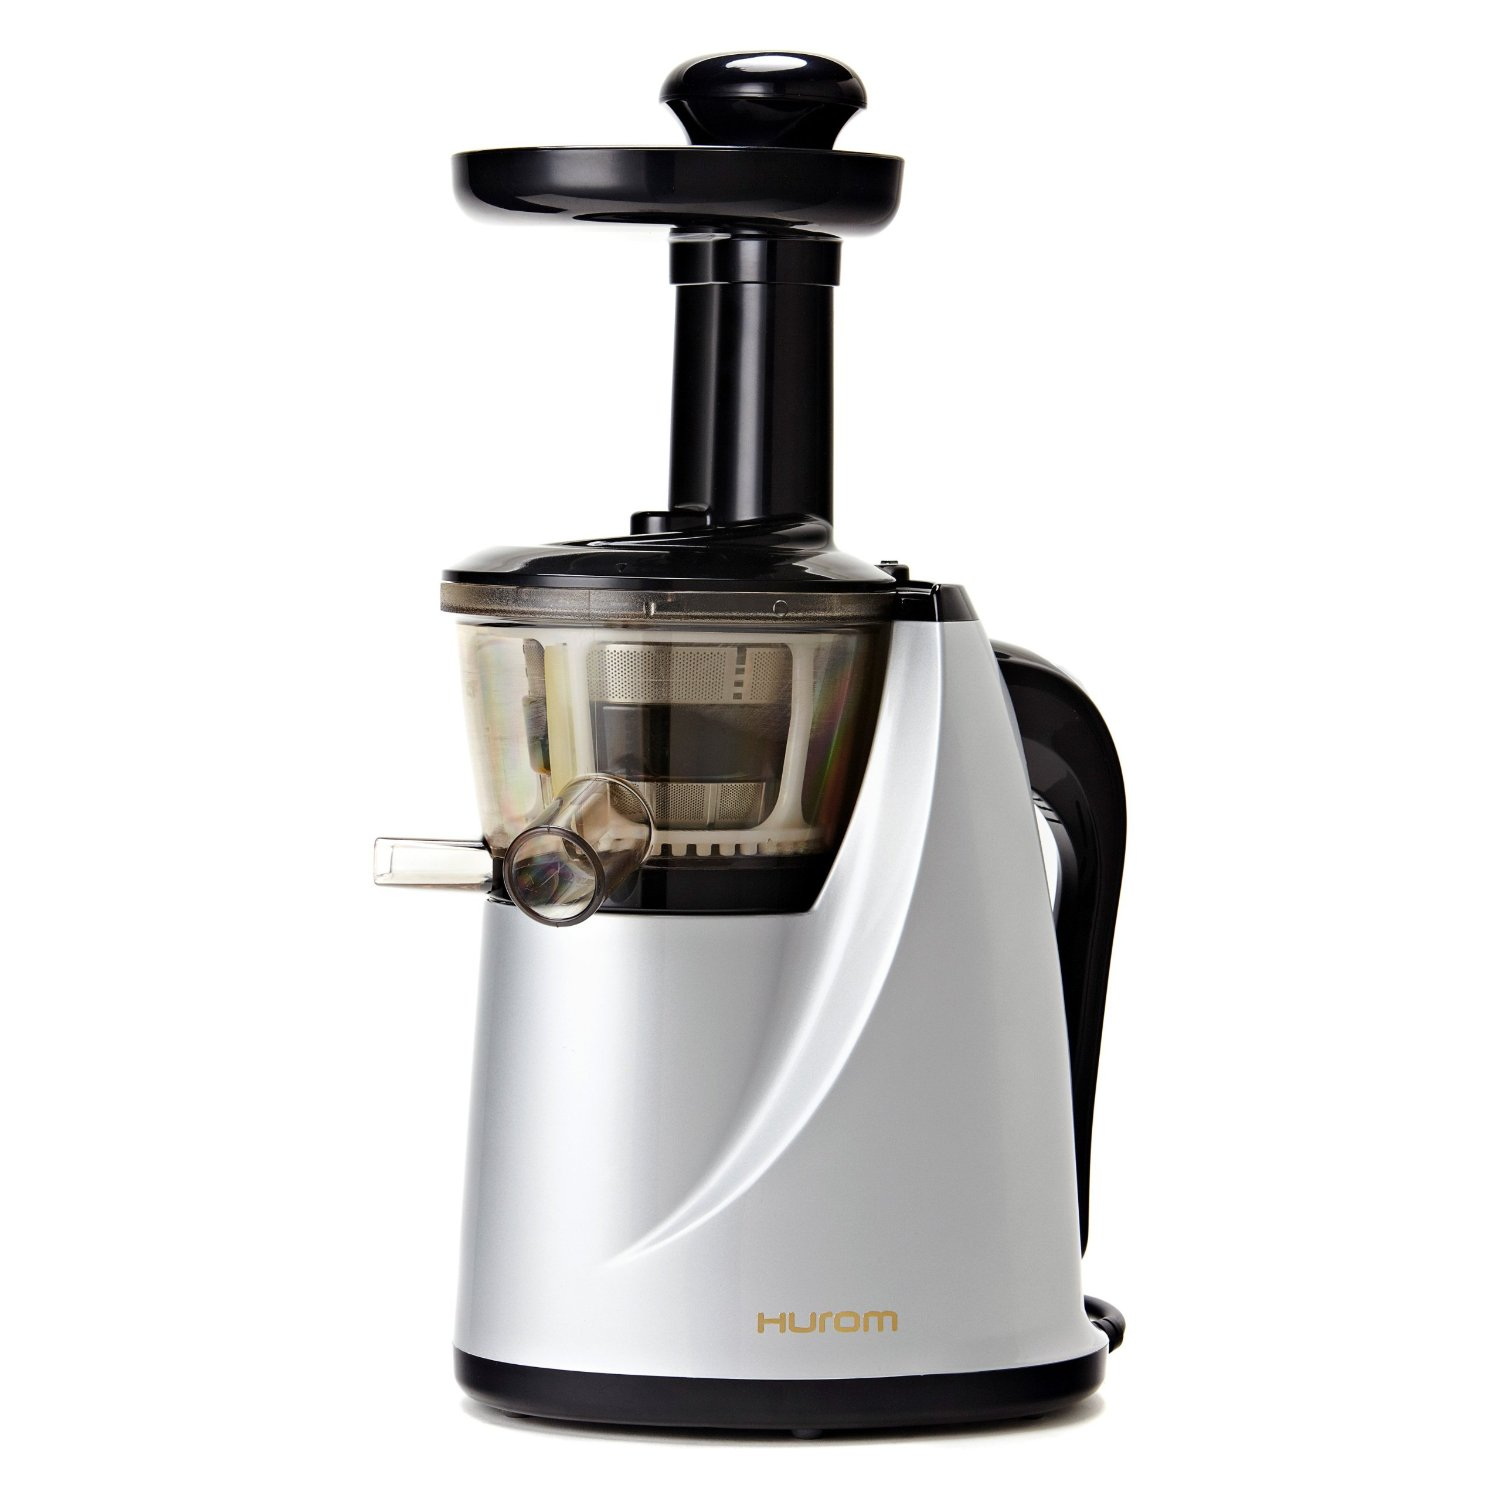 Purus Slow Masticating Juicer : Hurom HU-100 Masticating Slow Juicer Review - Best Cold Press Juicers